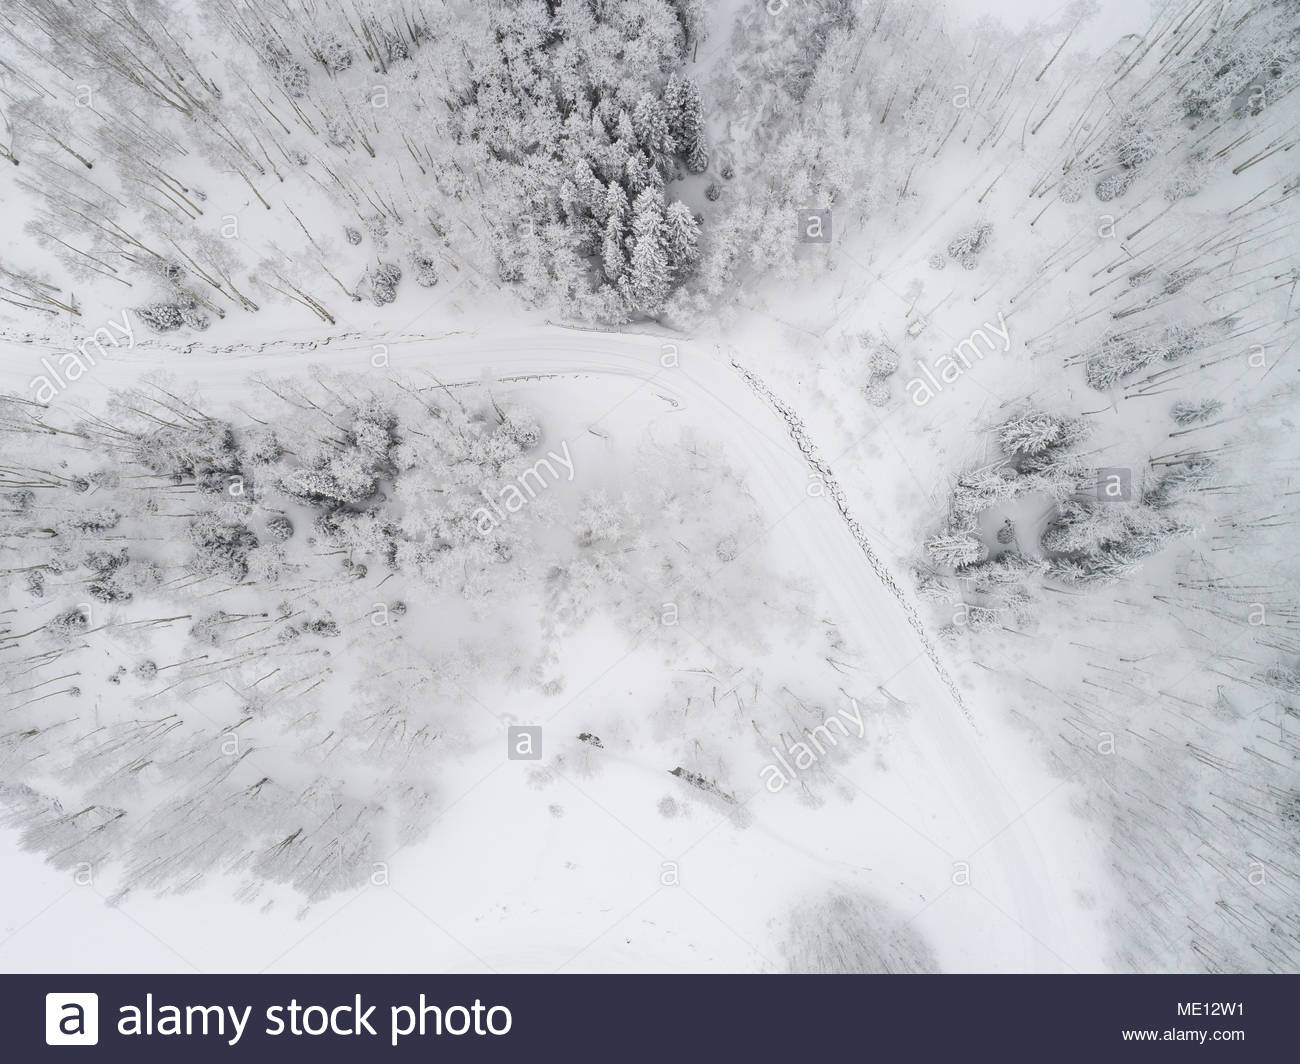 A snow covered road through a forest near Crested Butte, Colorado from directly overhead. - Stock Image